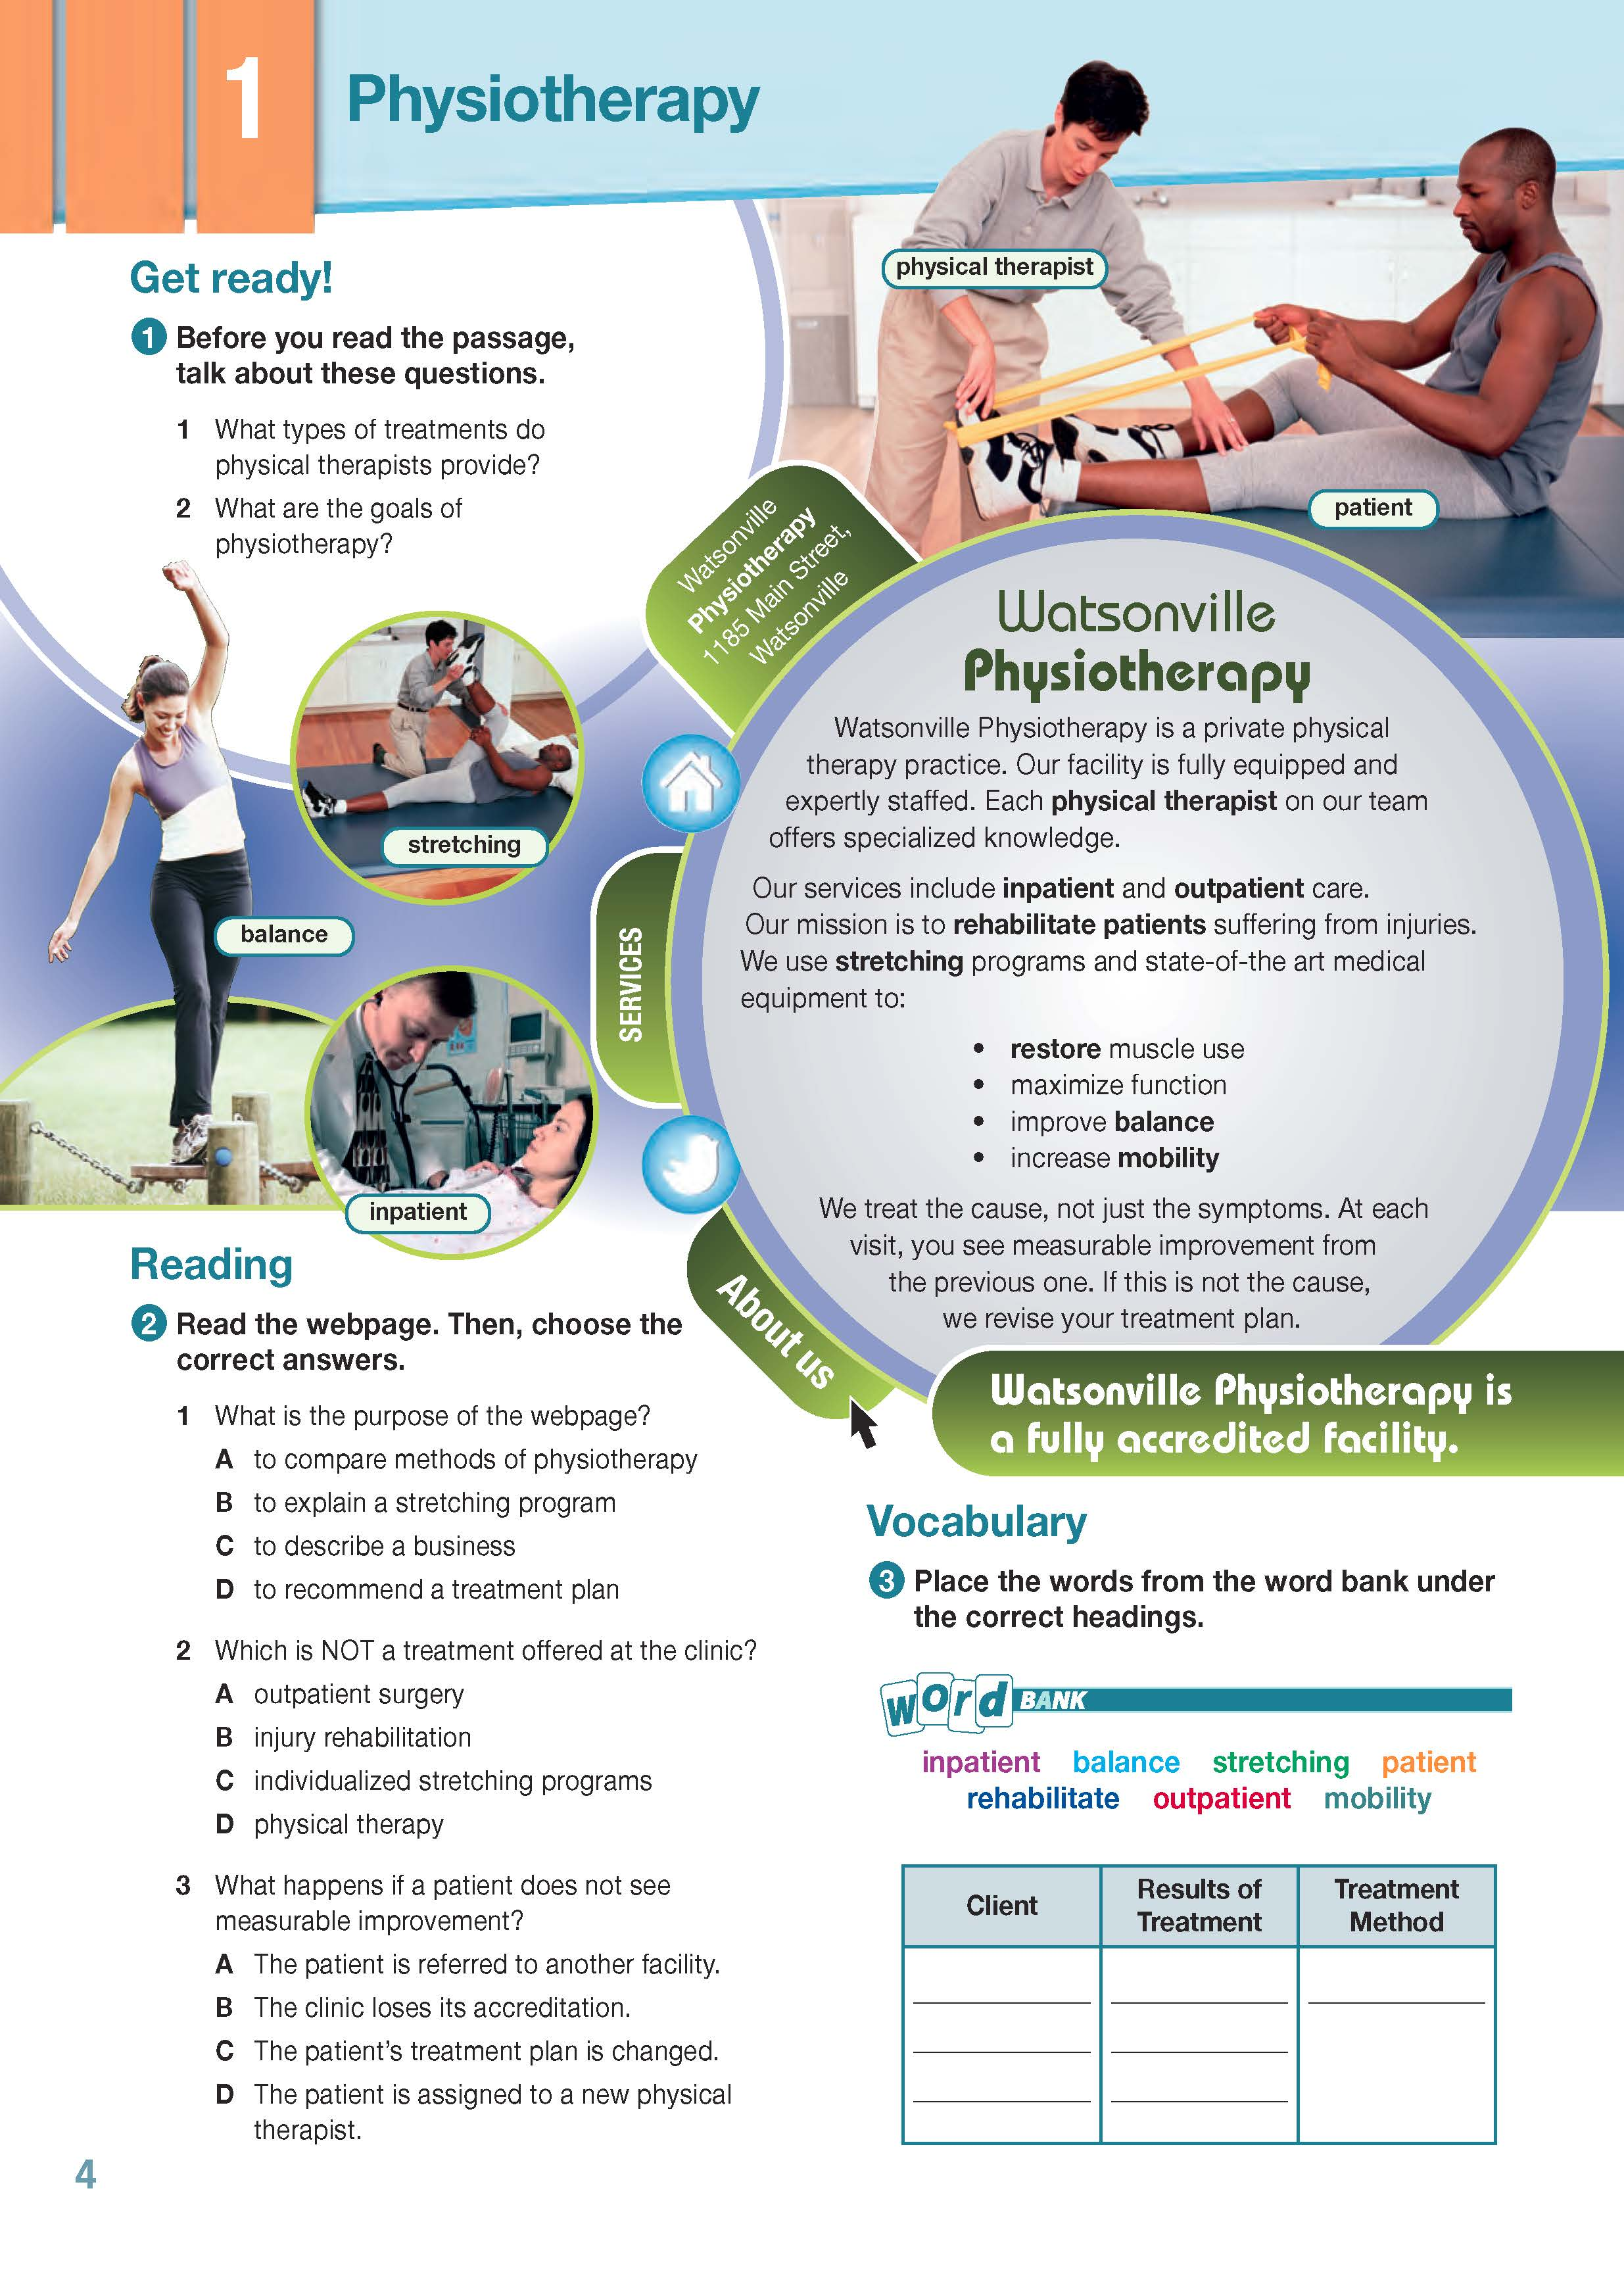 ESP English for Specific Purposes - Career Paths: Physiotherapy - Sample Page 1